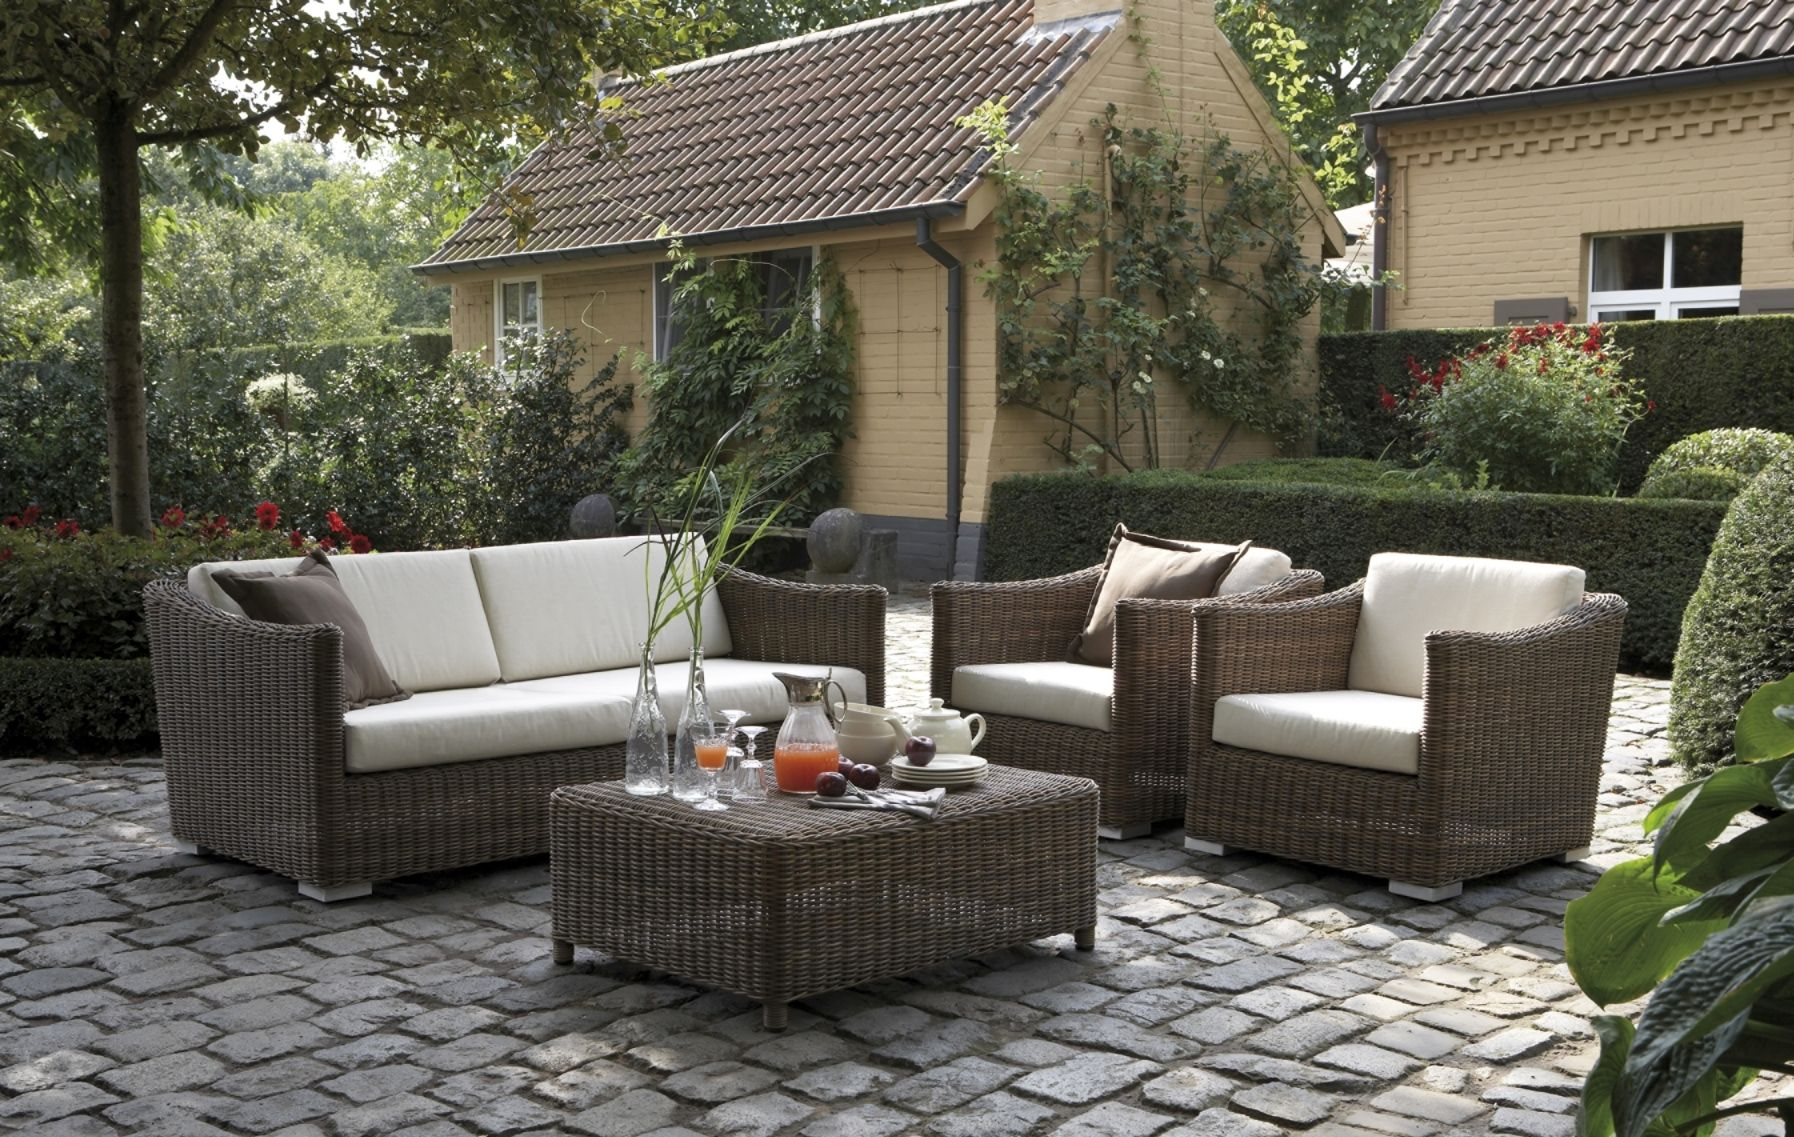 Do You Want To Decorate Your Terrace With Outdoor Furniture But Do Not Know  What You Have To Think First To Be Able To Decide? Here Are Some Tips.